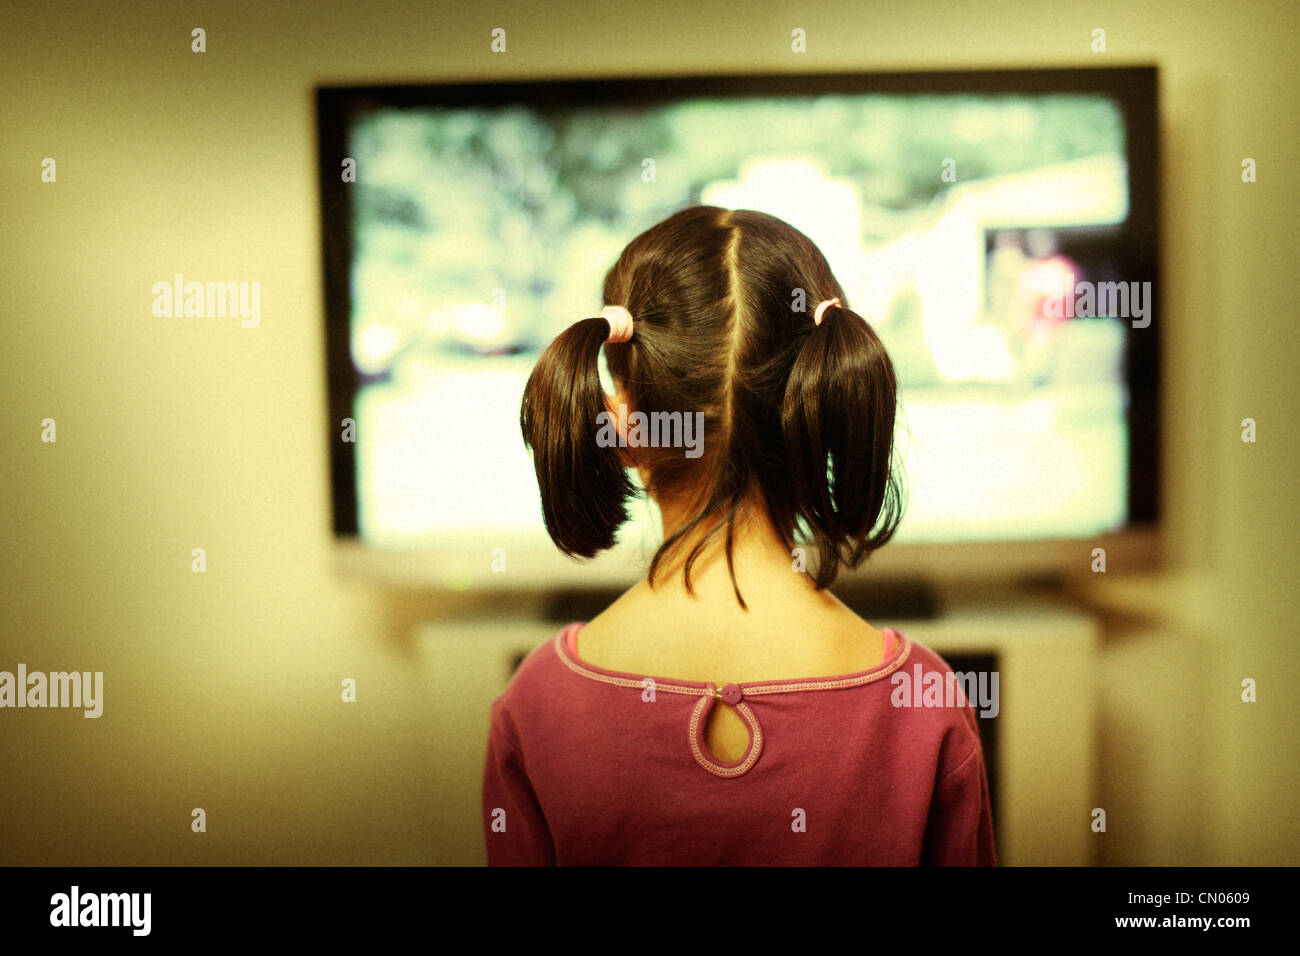 Girl watches tv screen. - Stock Image